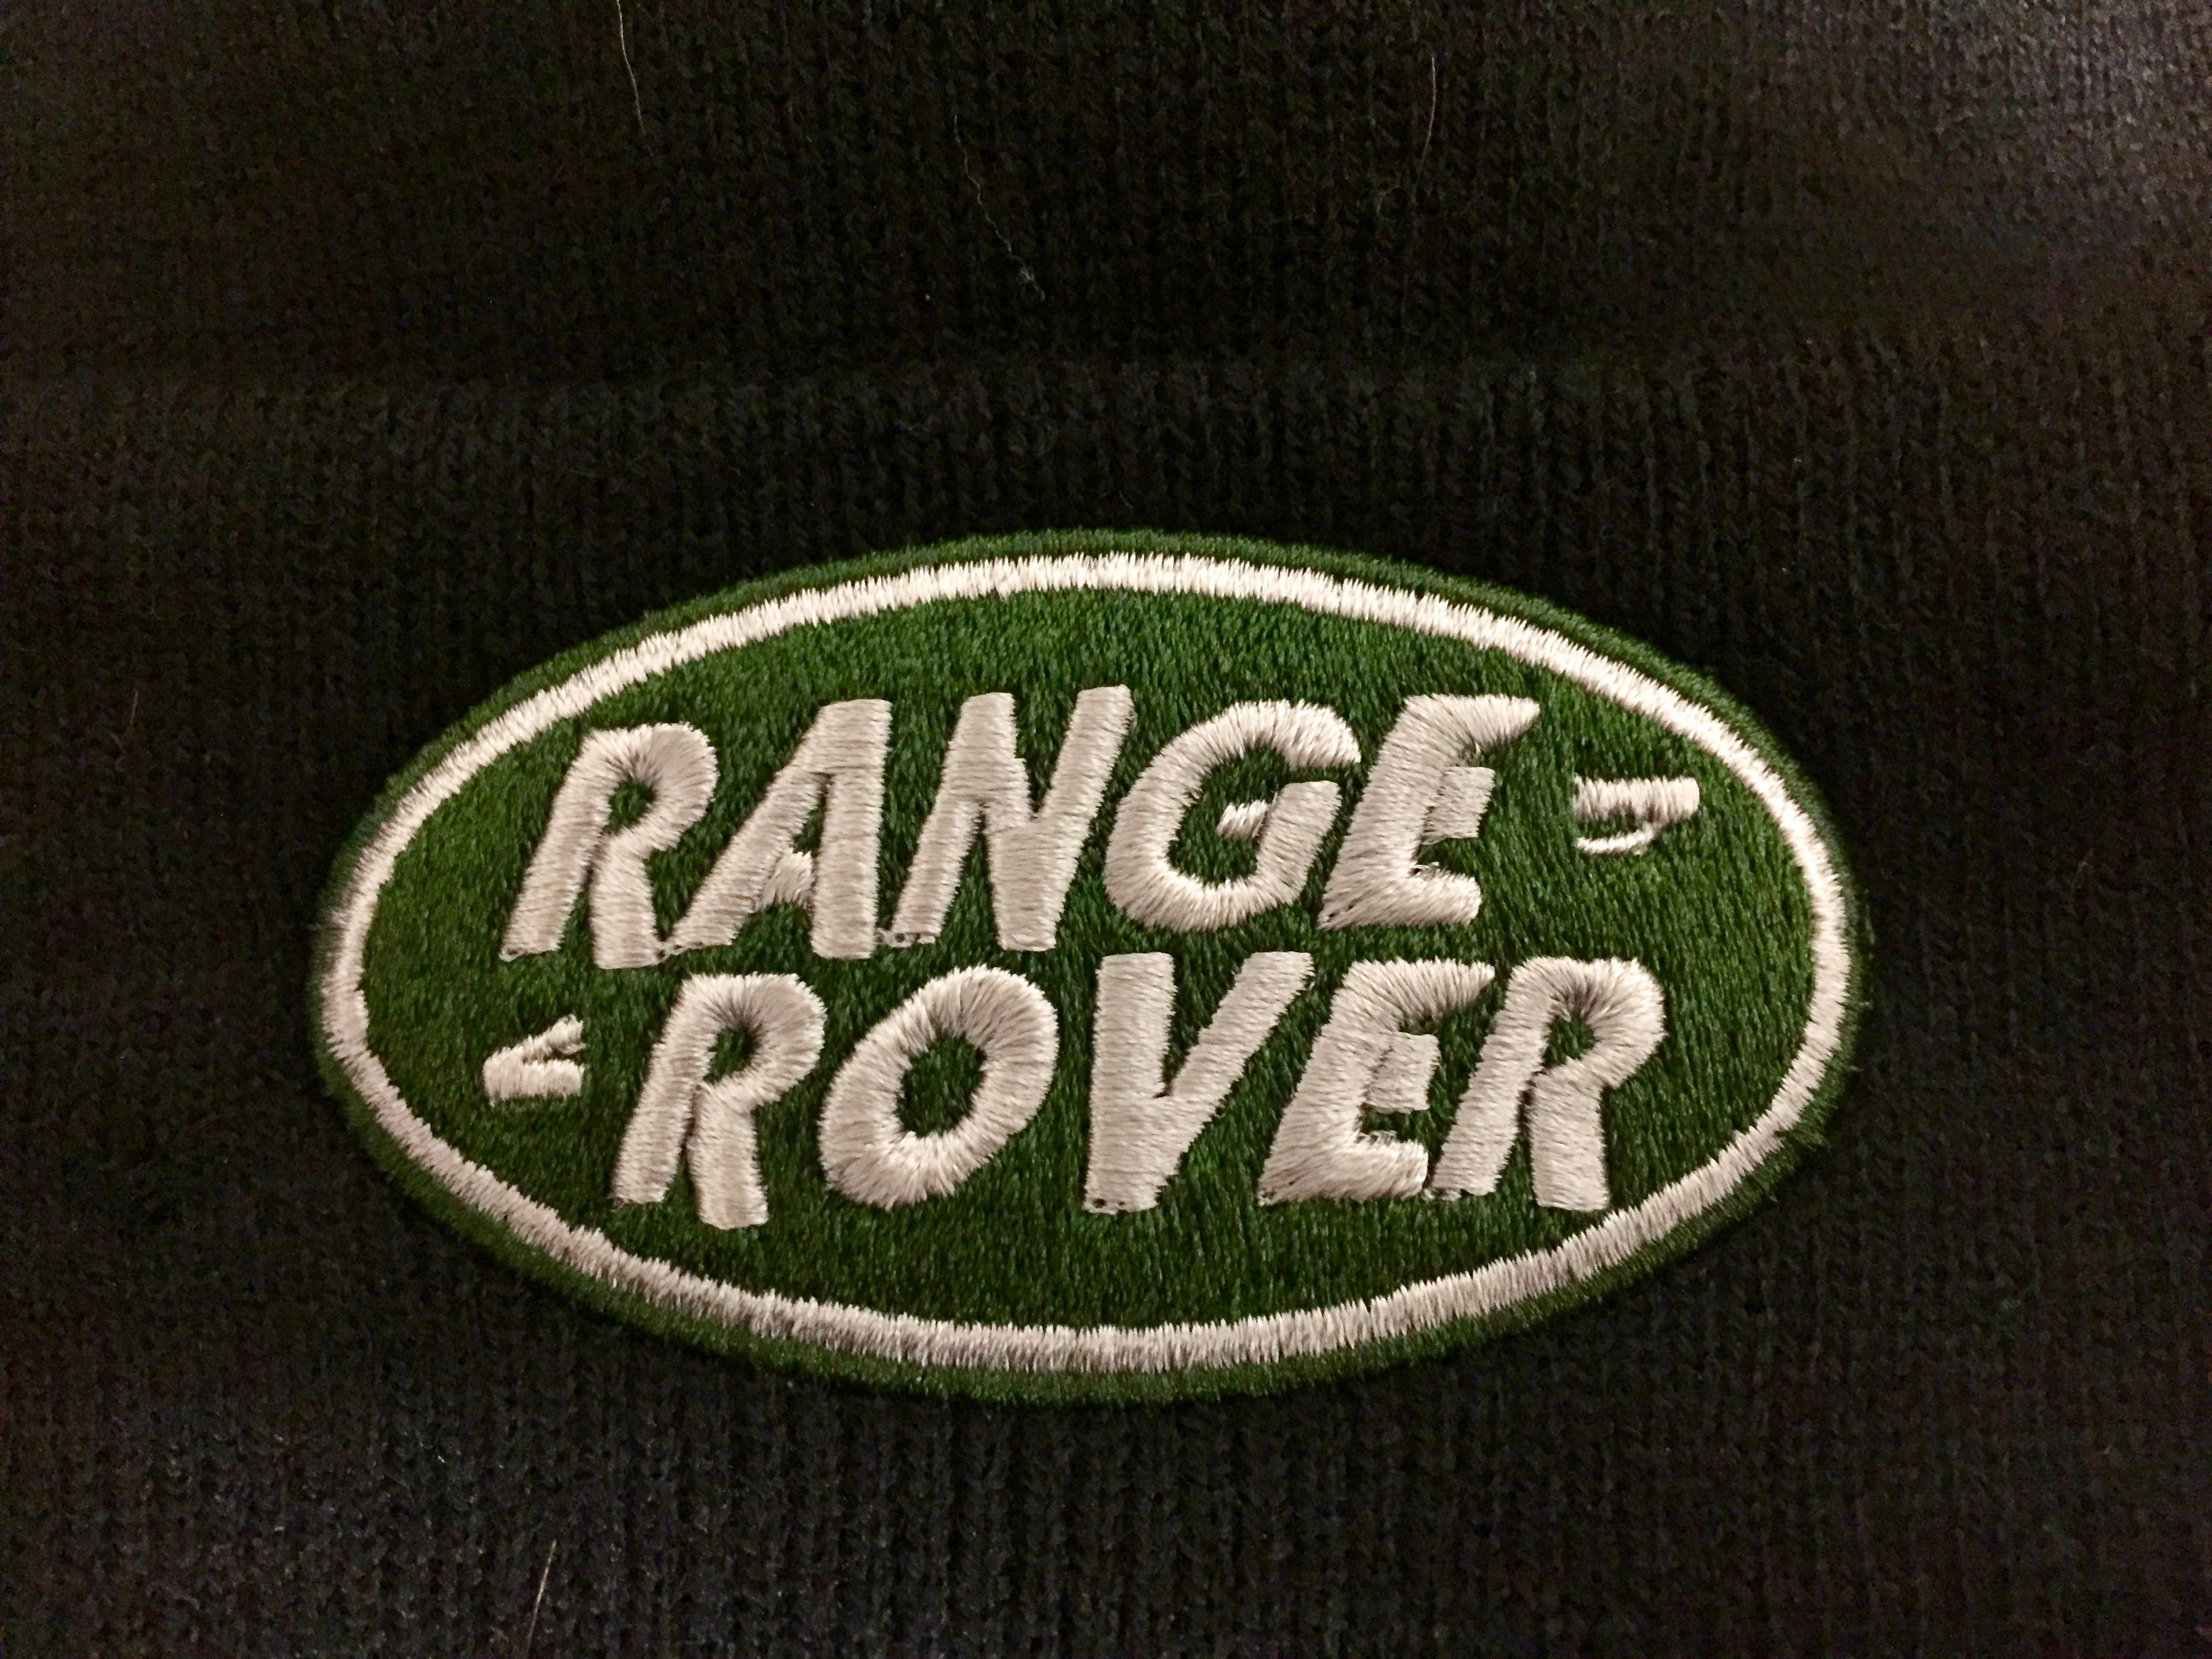 Design t shirt embroidery - Land Rover Range Rover Pic2stitch Custom Logo Embroidery Digitizing Service Clacton On Sea